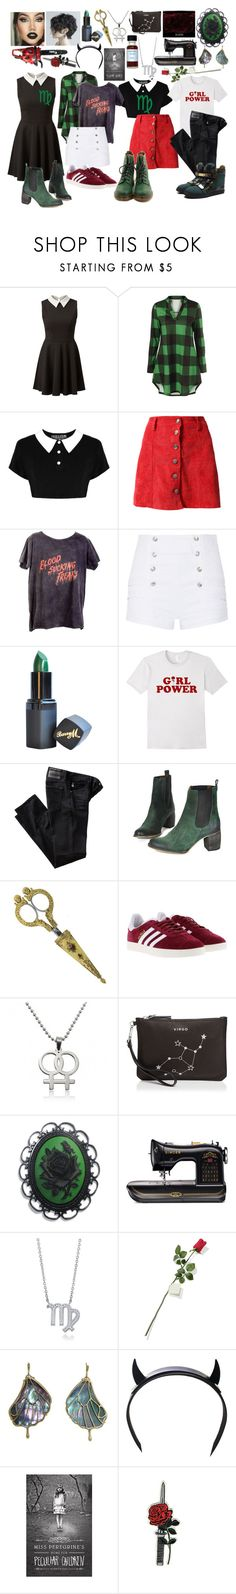 """Homestuck: Kanaya Maryam"" by cartoonvillian ❤ liked on Polyvore featuring Killstar, ATG, Pierre Balmain, Barry M, AG Adriano Goldschmied, Jeffrey Campbell, Giuseppe Zanotti, 1928, adidas and Etienne Aigner"